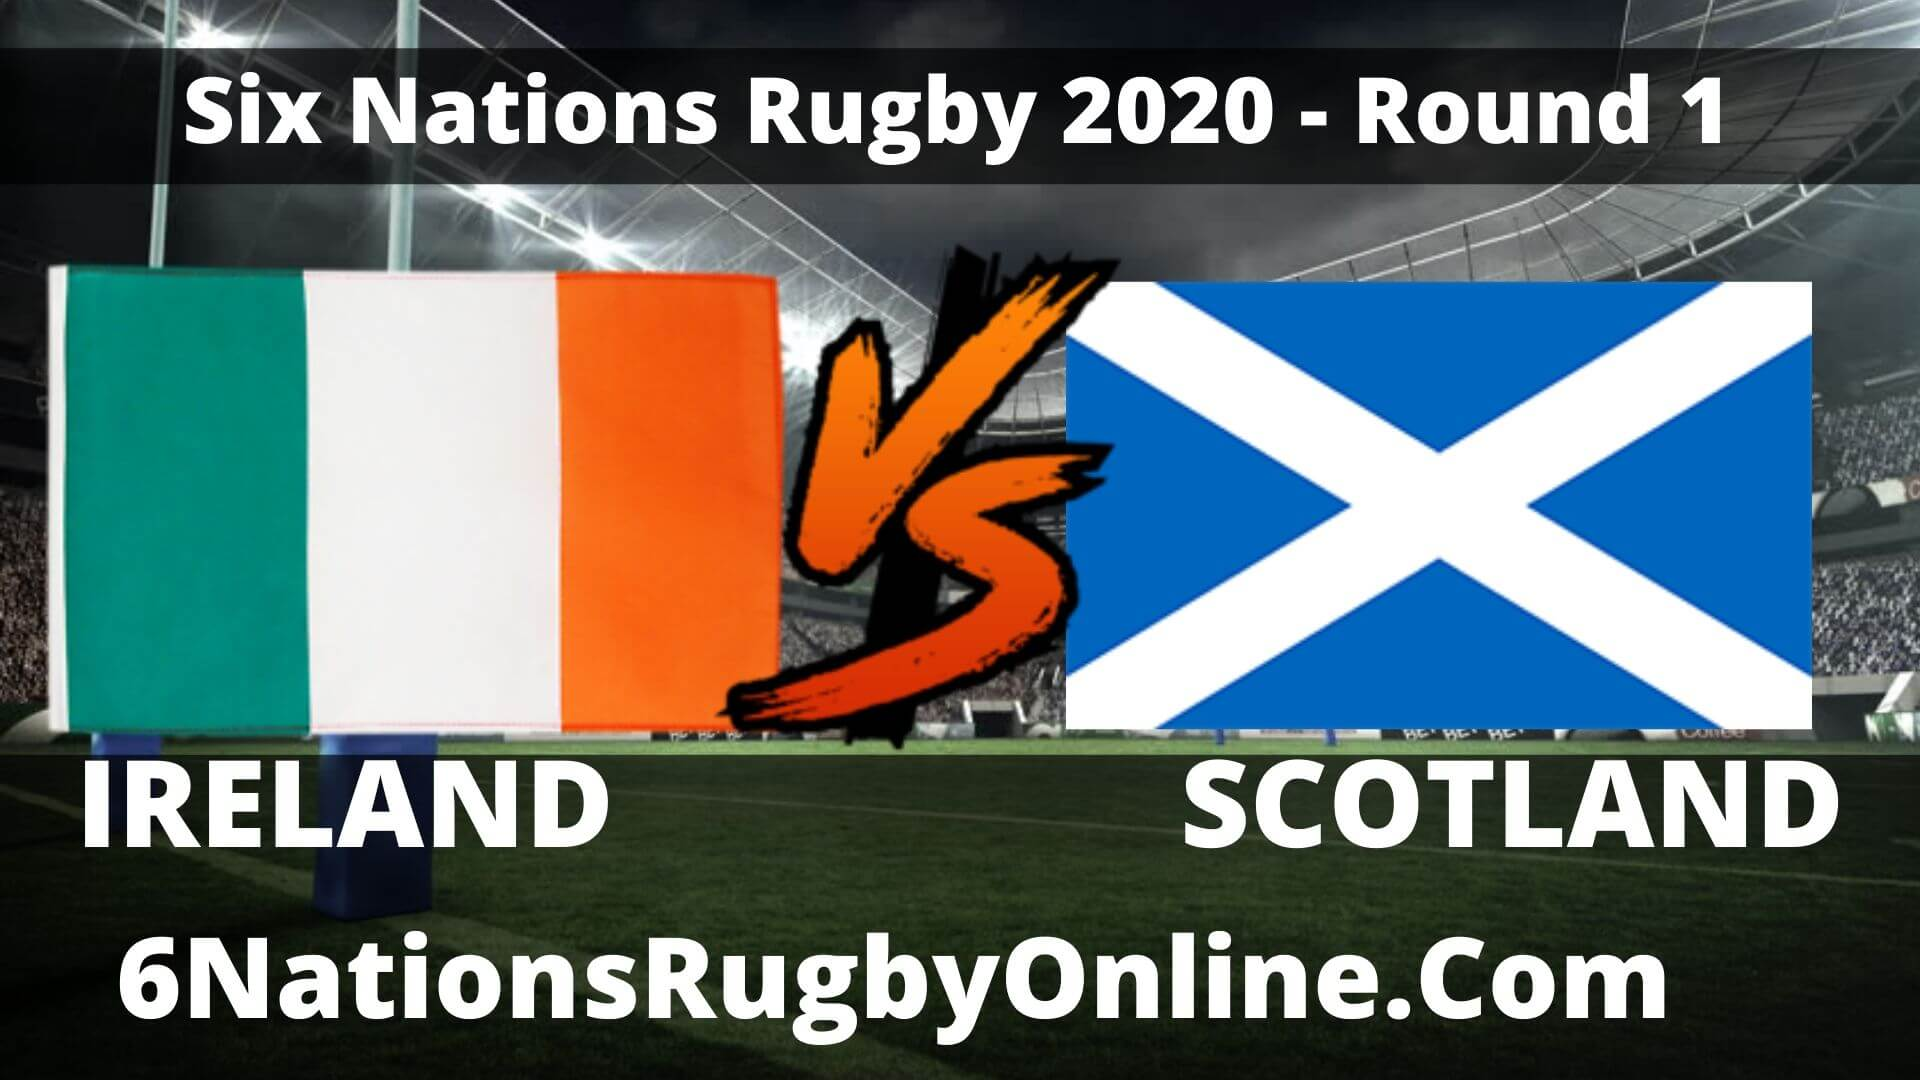 Ireland vs Scotland Live Stream 2020 Round 1 | Full Match Replay